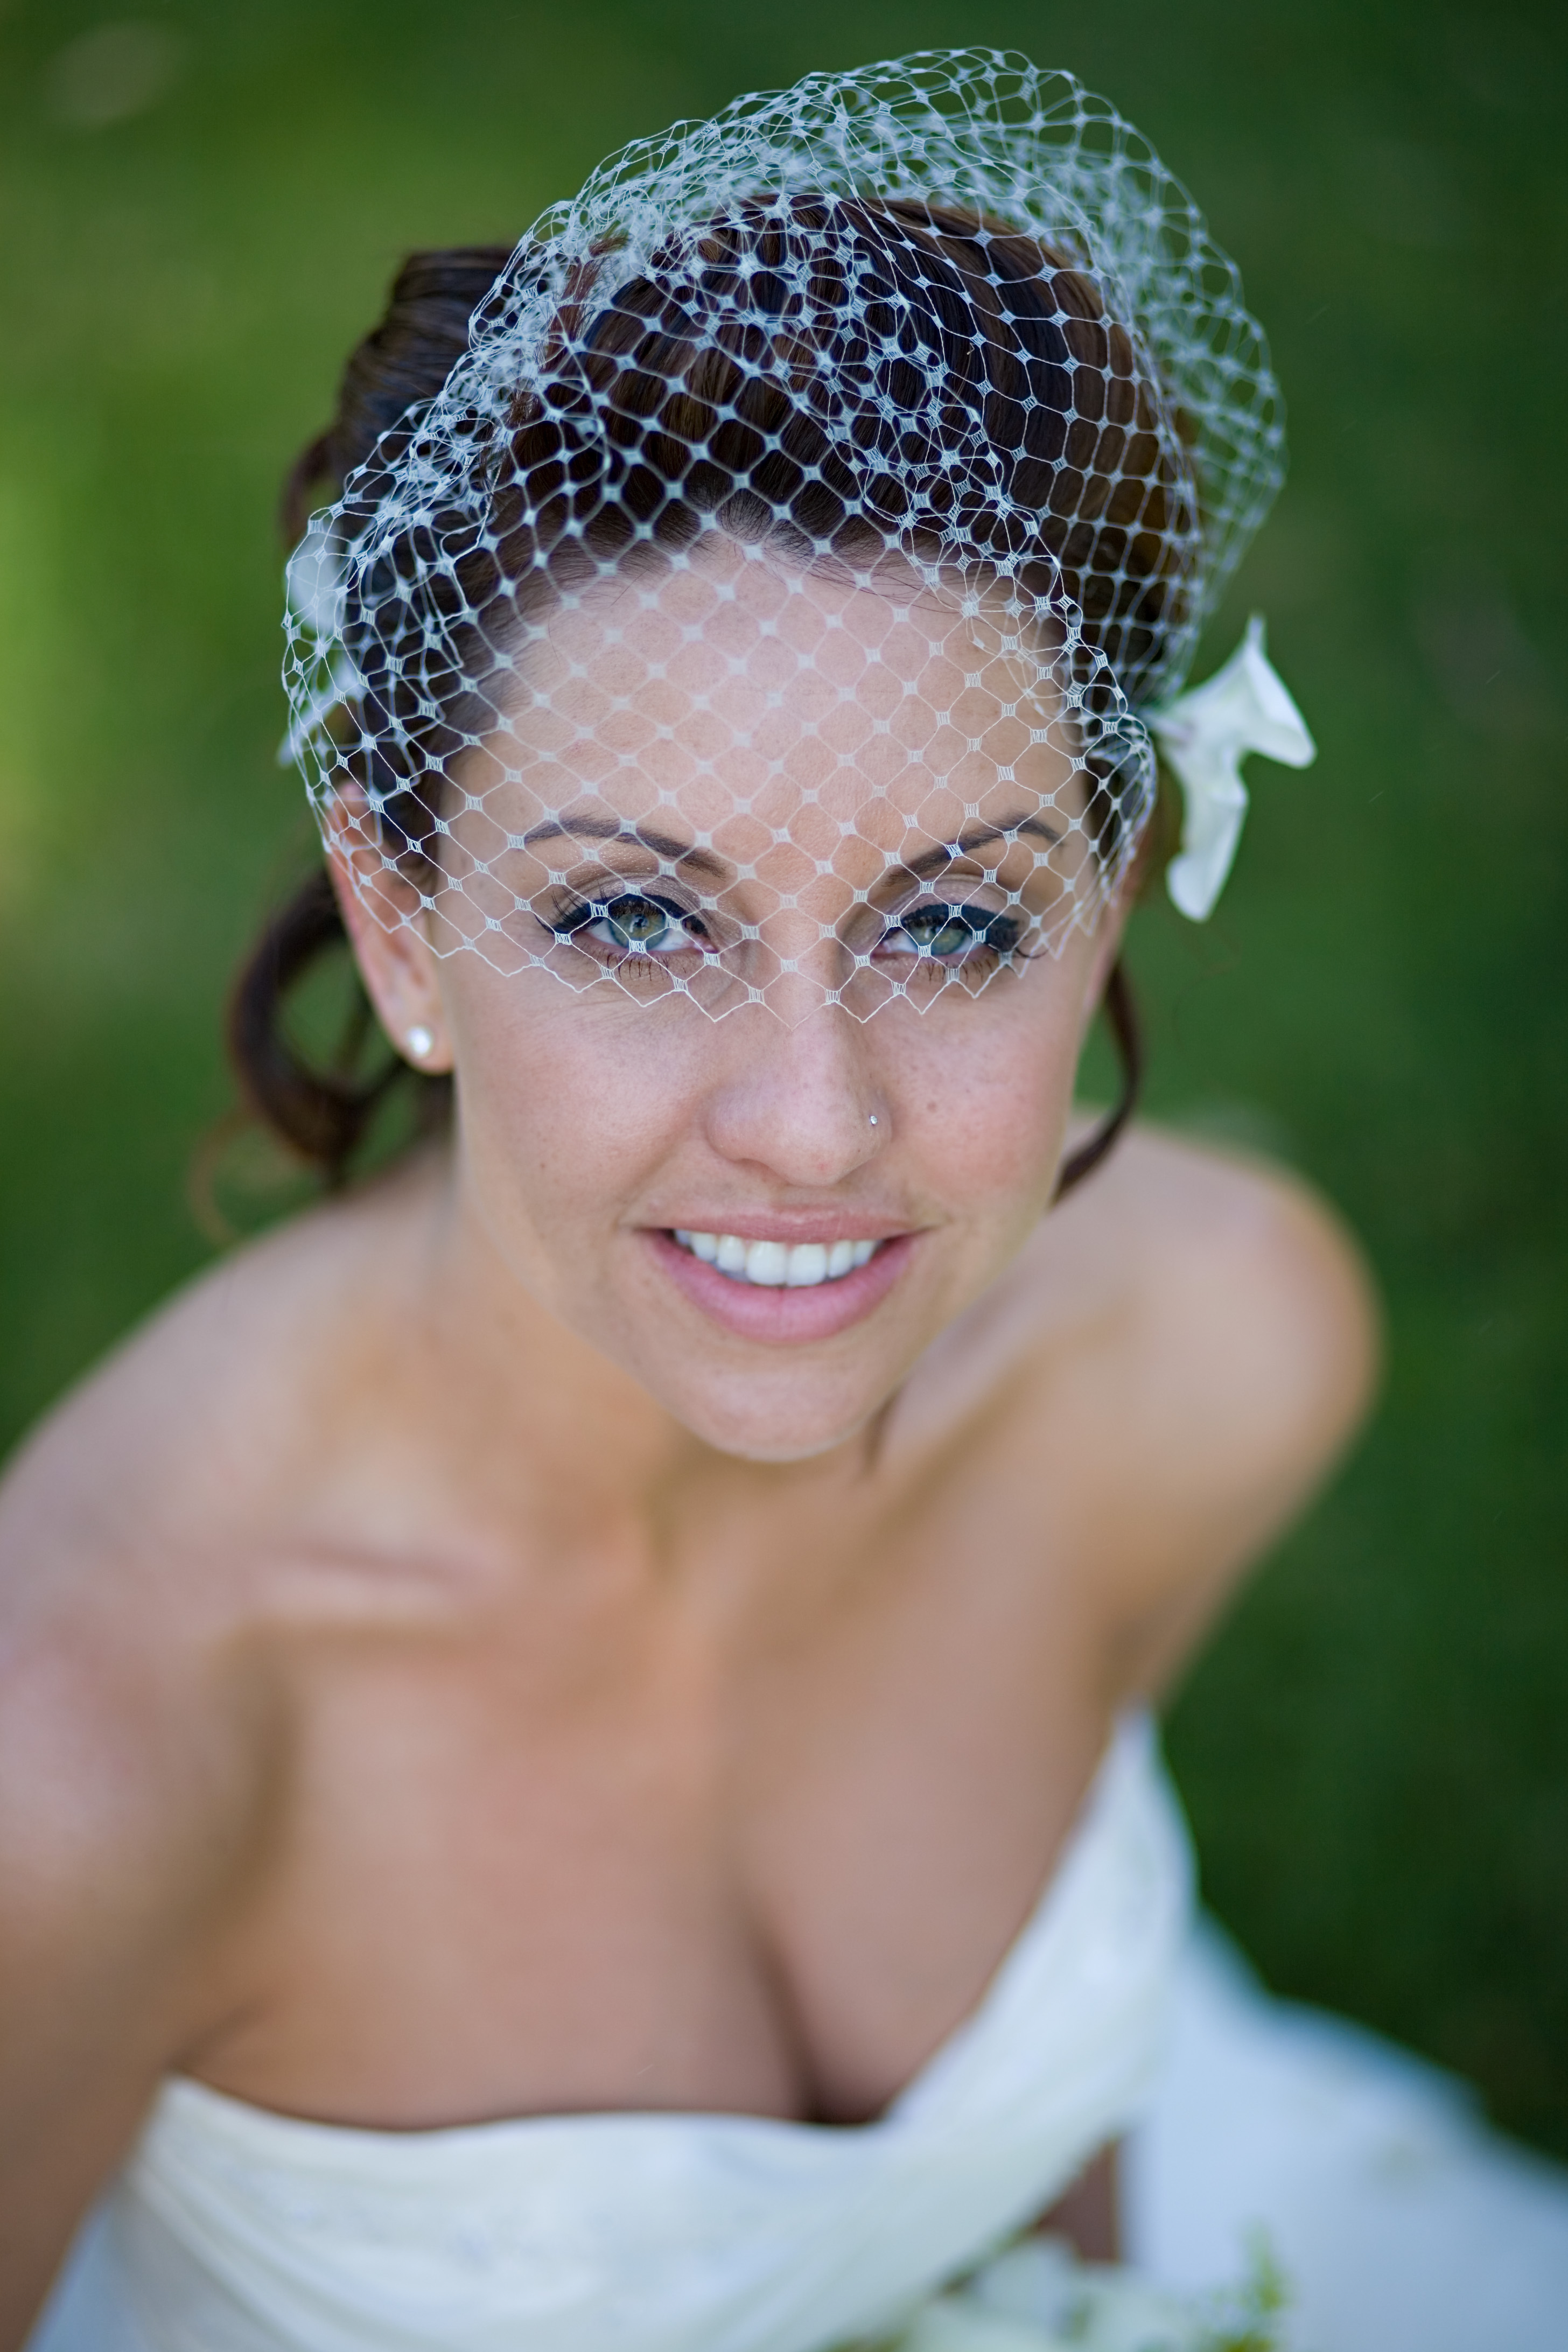 Veils, Fashion, Veil, Bridal portrait, Dave richards, Birdcage veil